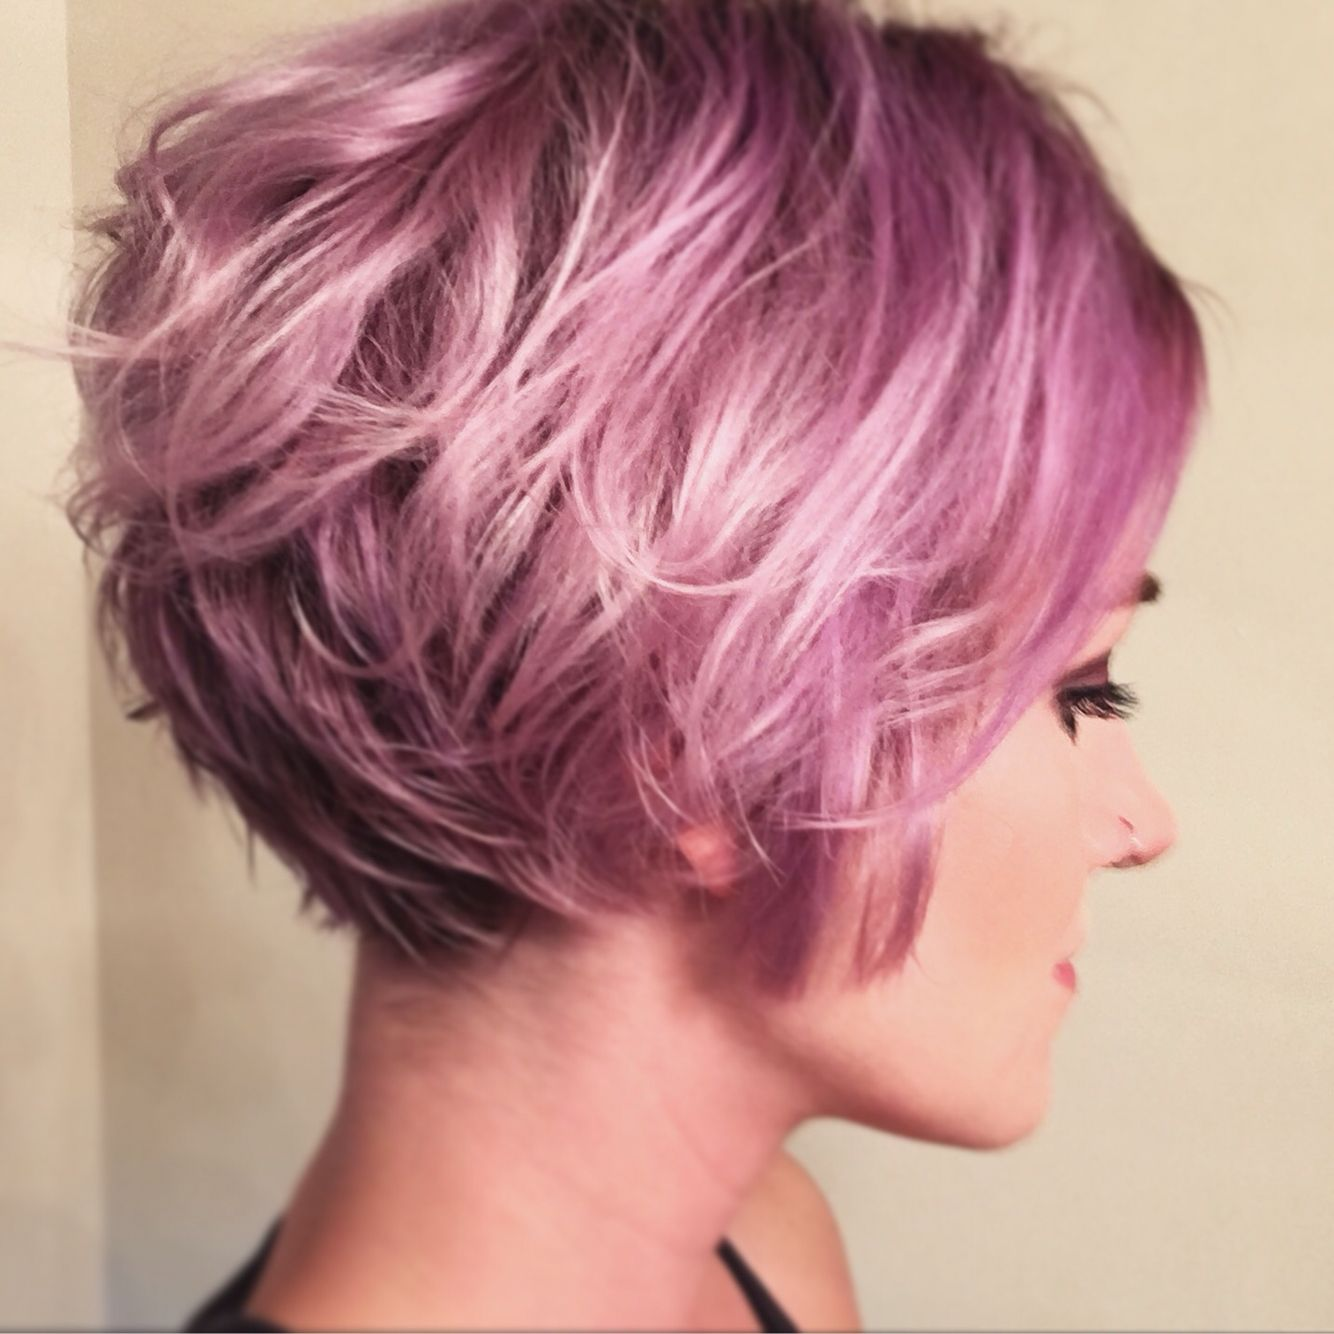 Lilac Lavender Short Hair Using Overtone Products In Pastel Purple Pink Short Hair Styles Short Hair Color Hair